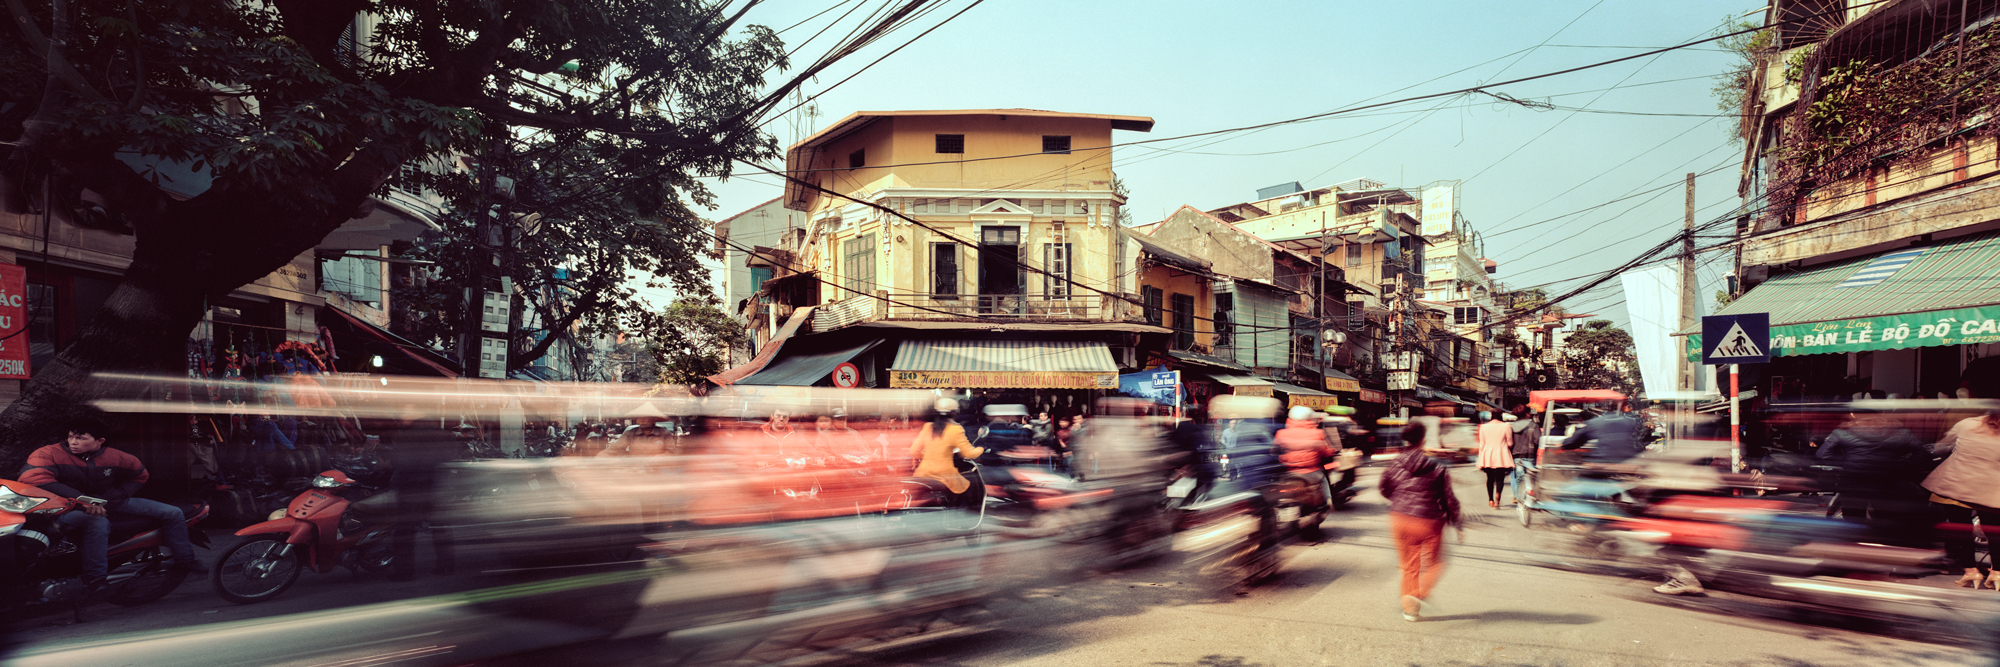 Busy street in Hanoi Old Town